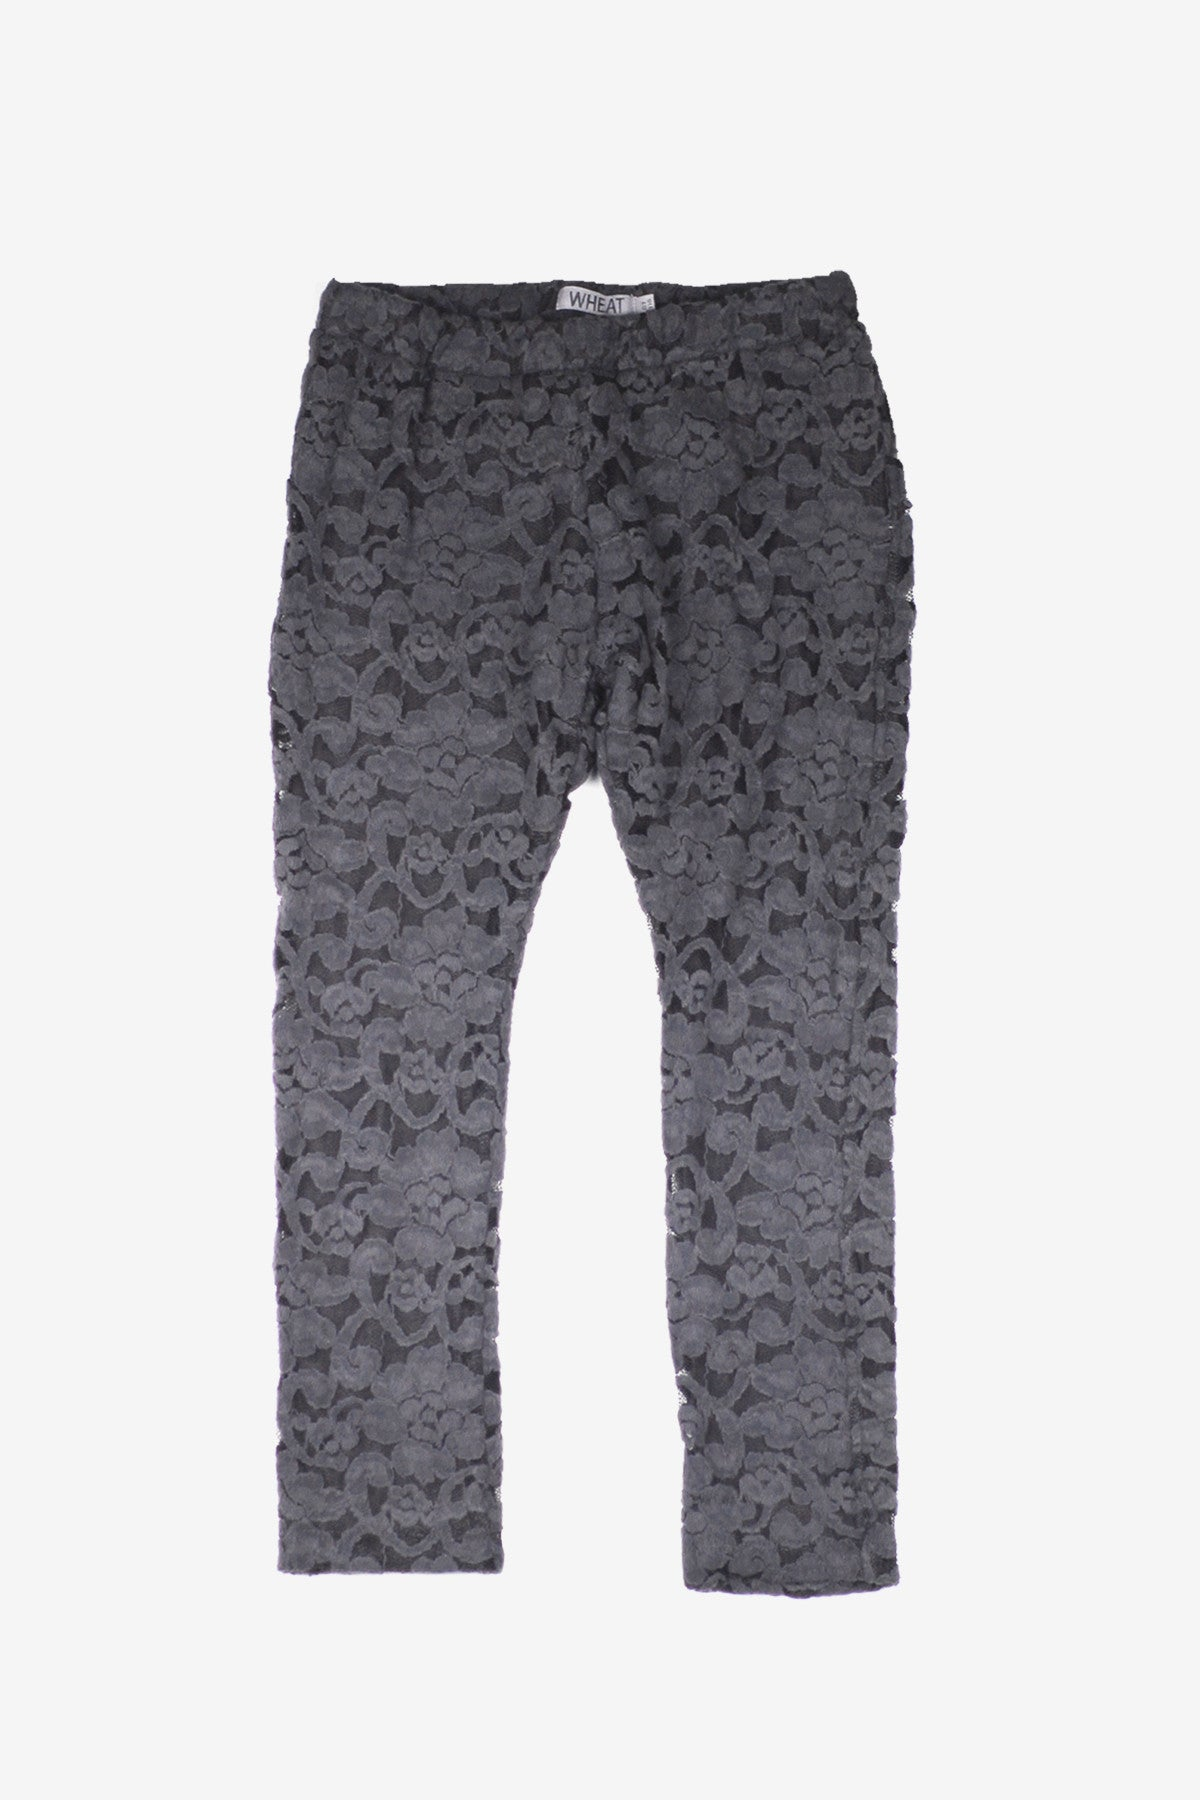 Wheat Girls Lace Pant